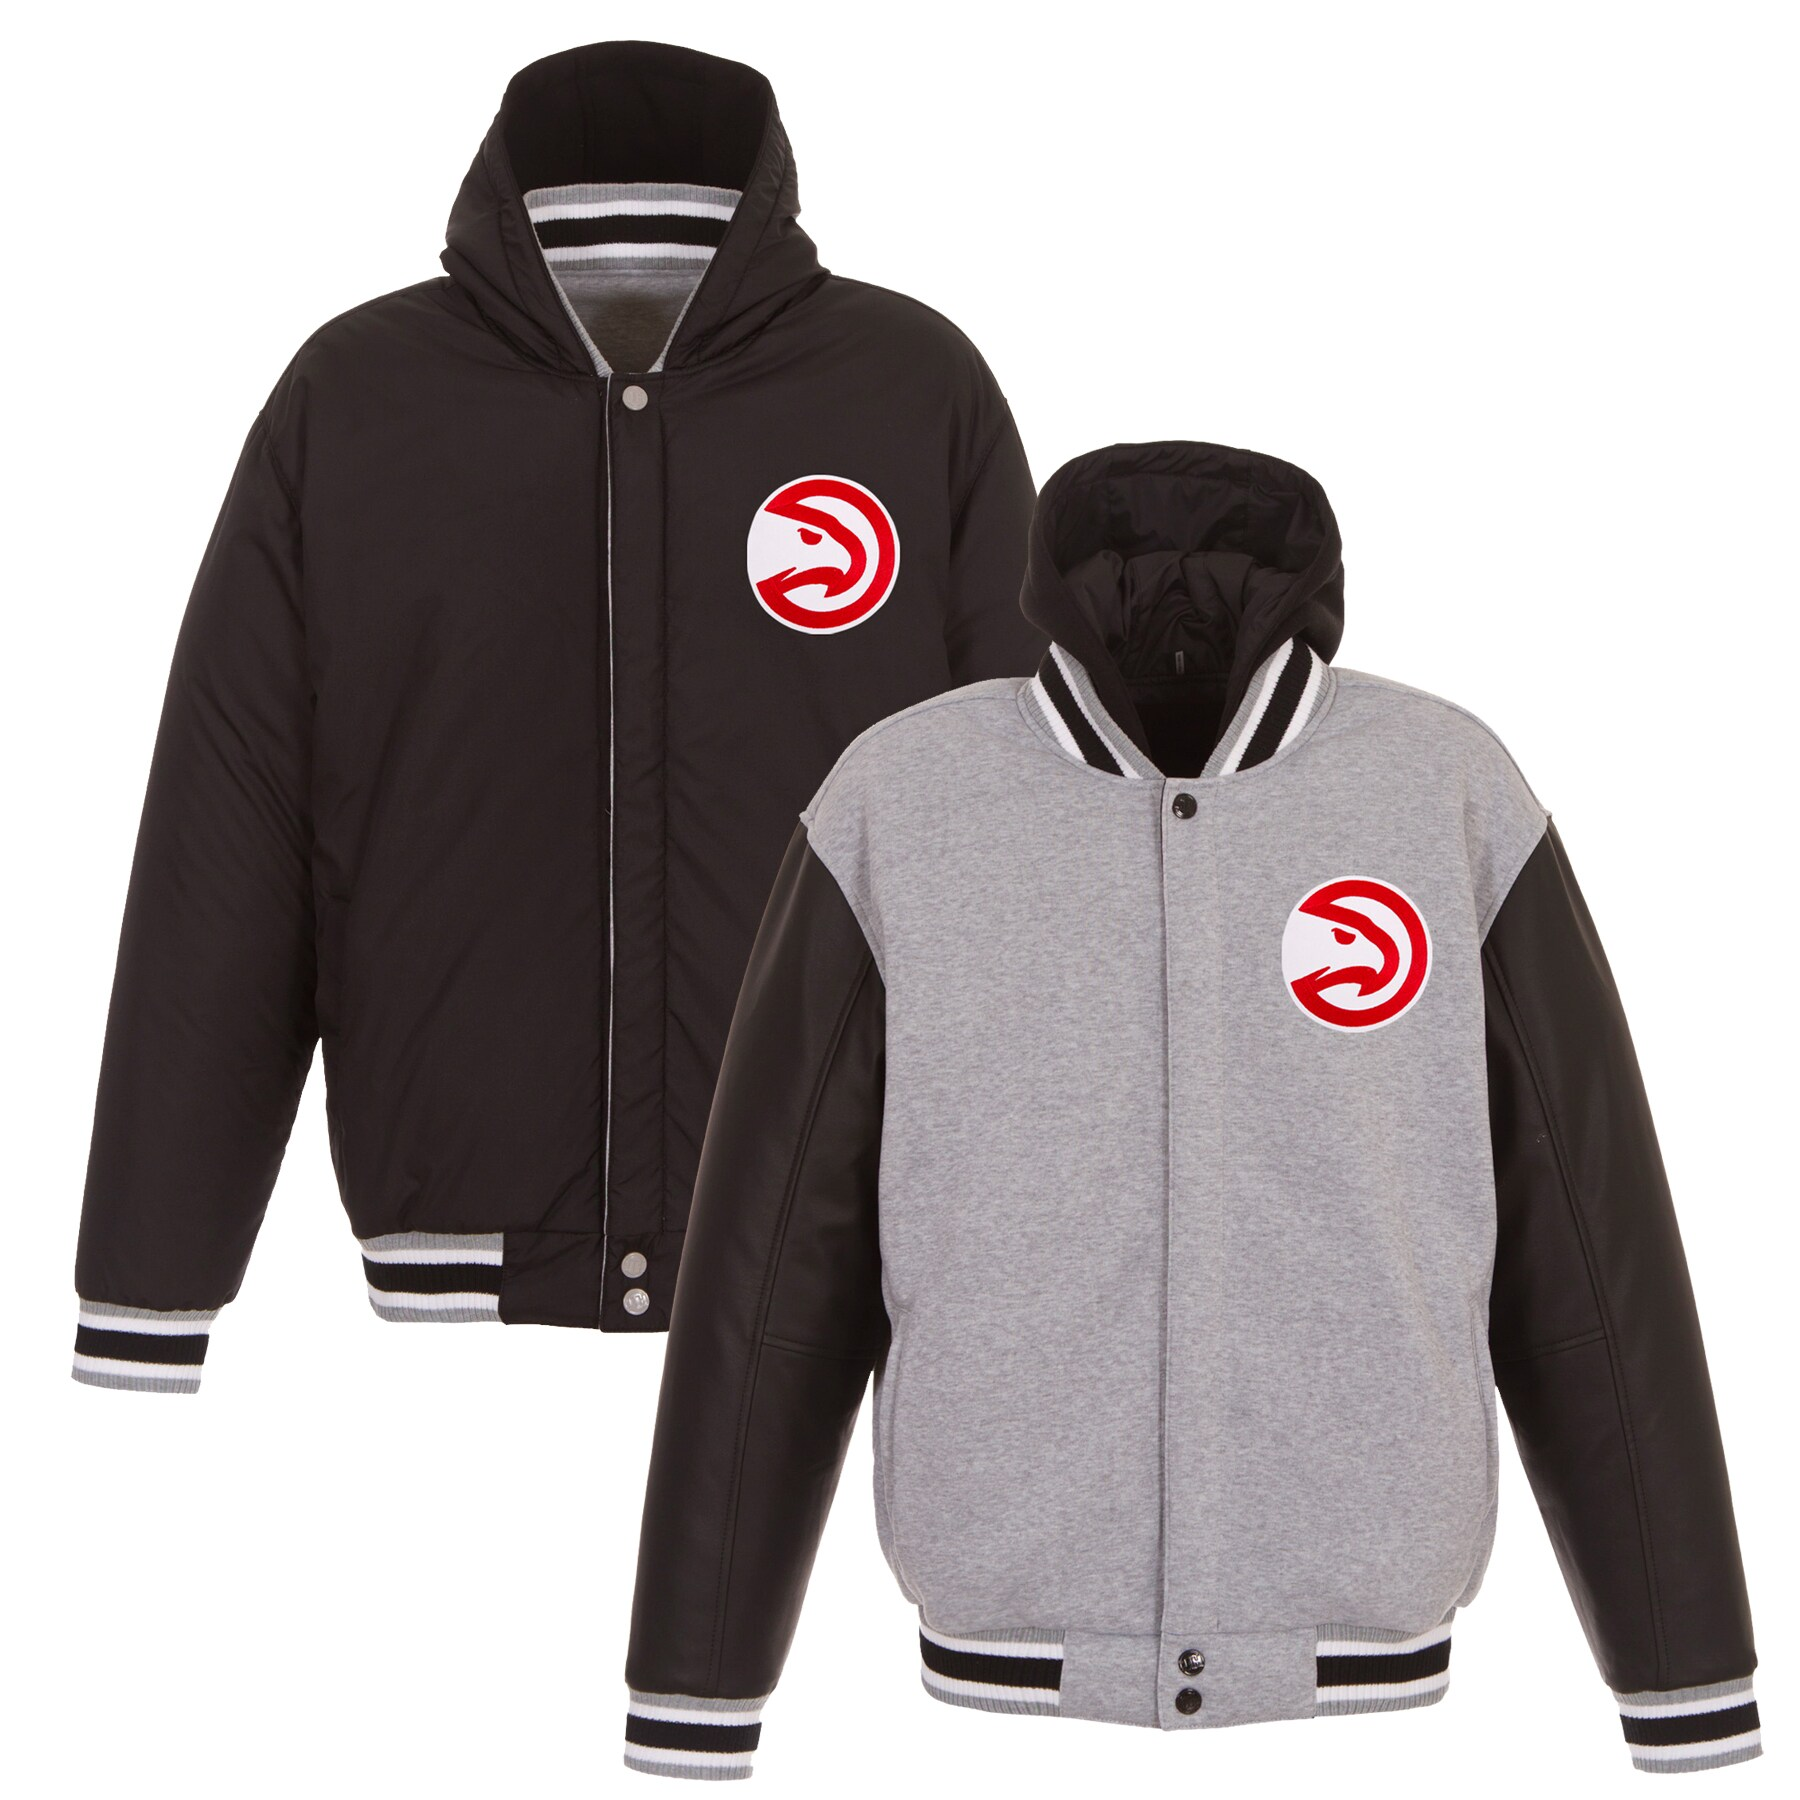 Atlanta Hawks JH Design Embroidered Logo Reversible Hooded Fleece Full-Snap Jacket - Gray/Black